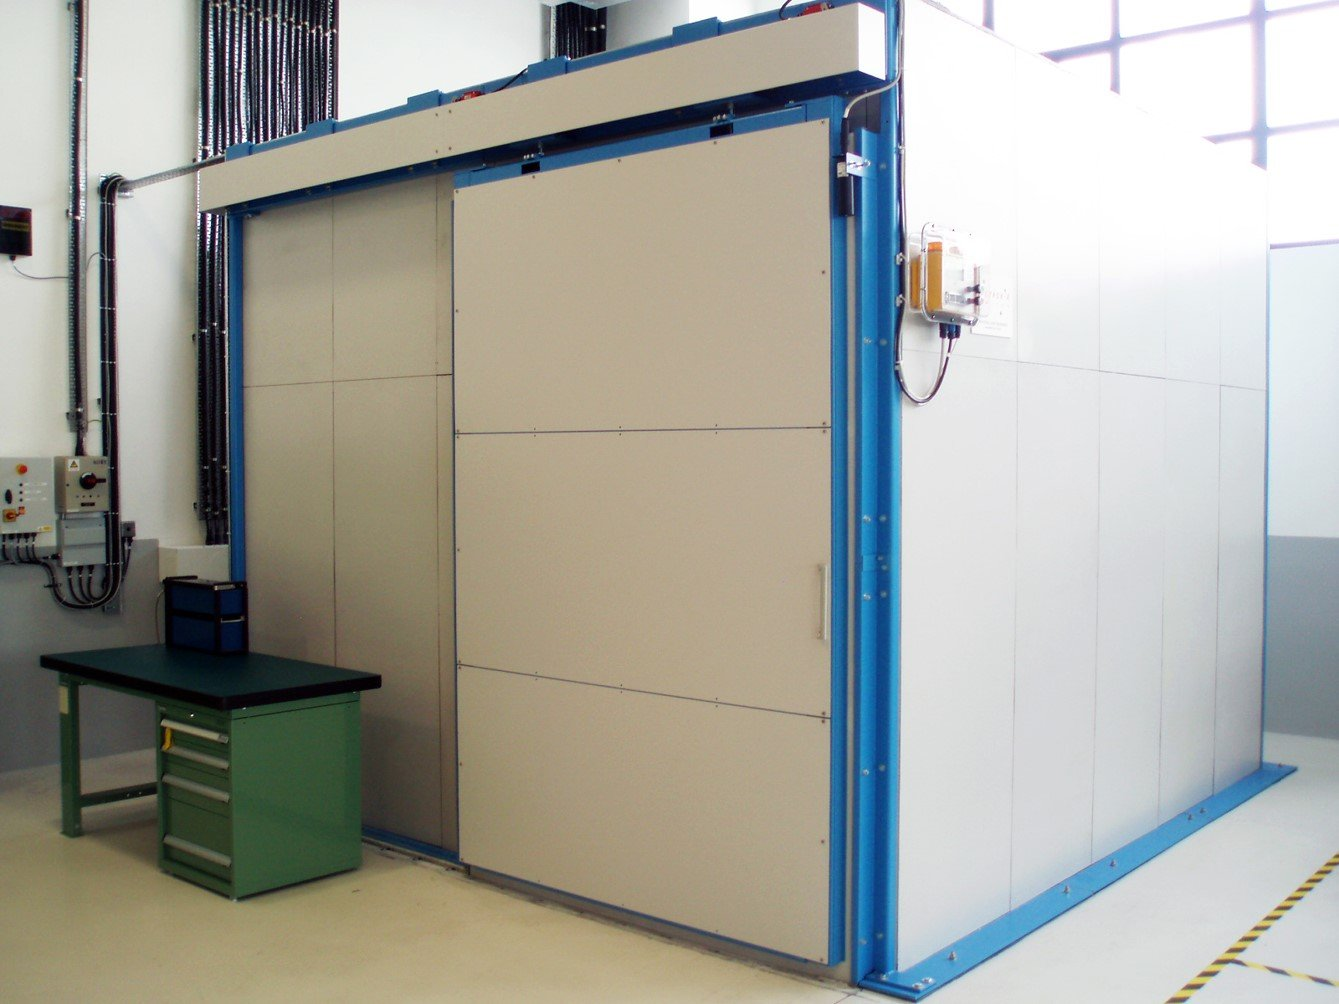 200kV Lead Panelled X-Ray Room